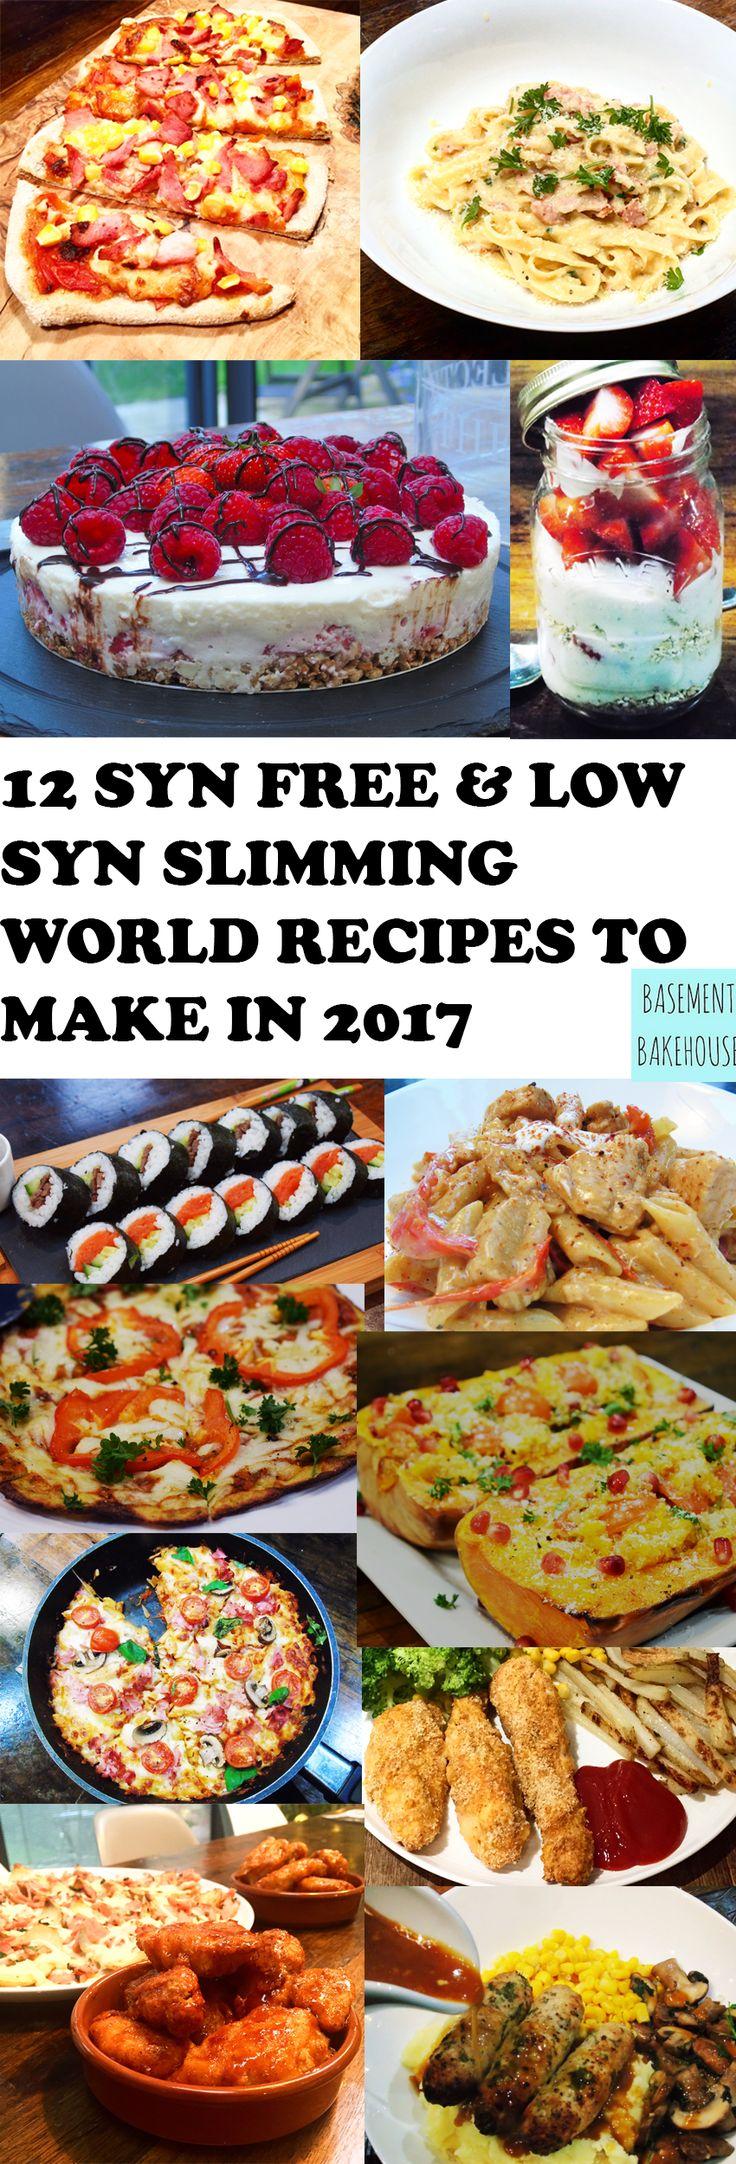 12 SLIMMING WORLD SYN FREE & LOW SYN RECIPES TO MAKE IN 2017